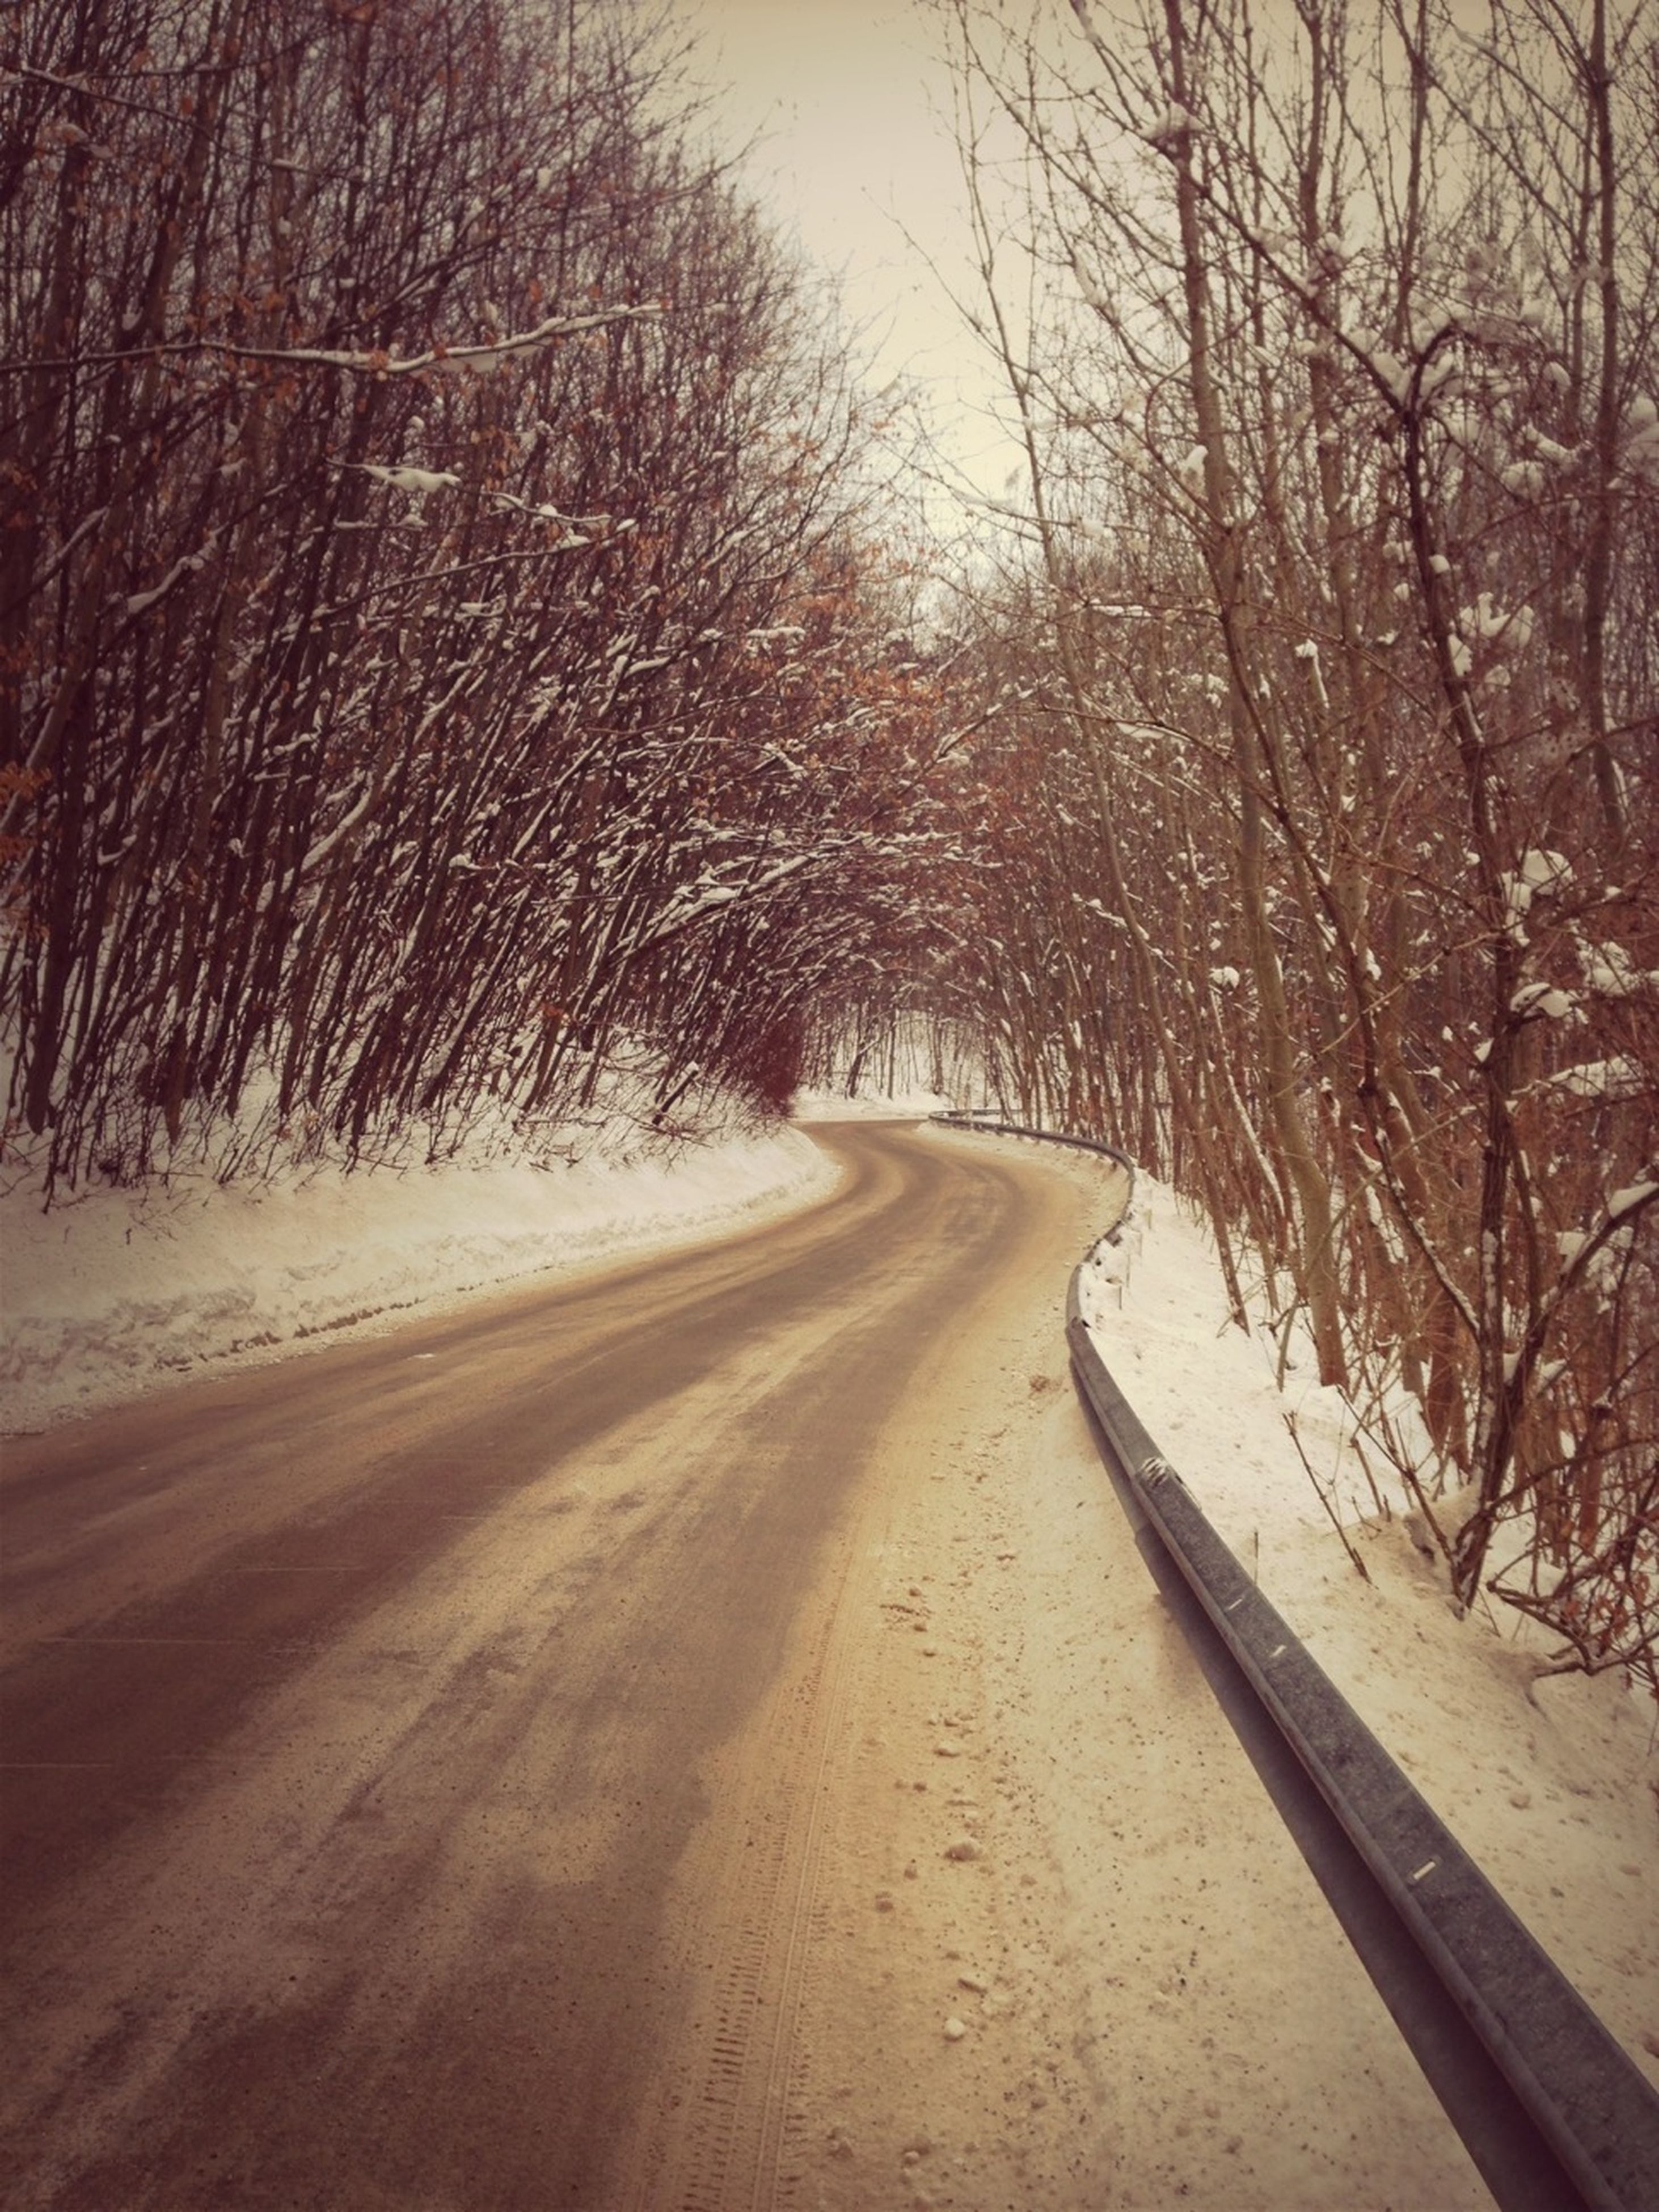 the way forward, tree, snow, bare tree, winter, cold temperature, road, diminishing perspective, tranquility, tranquil scene, vanishing point, nature, transportation, season, landscape, branch, weather, beauty in nature, empty road, scenics